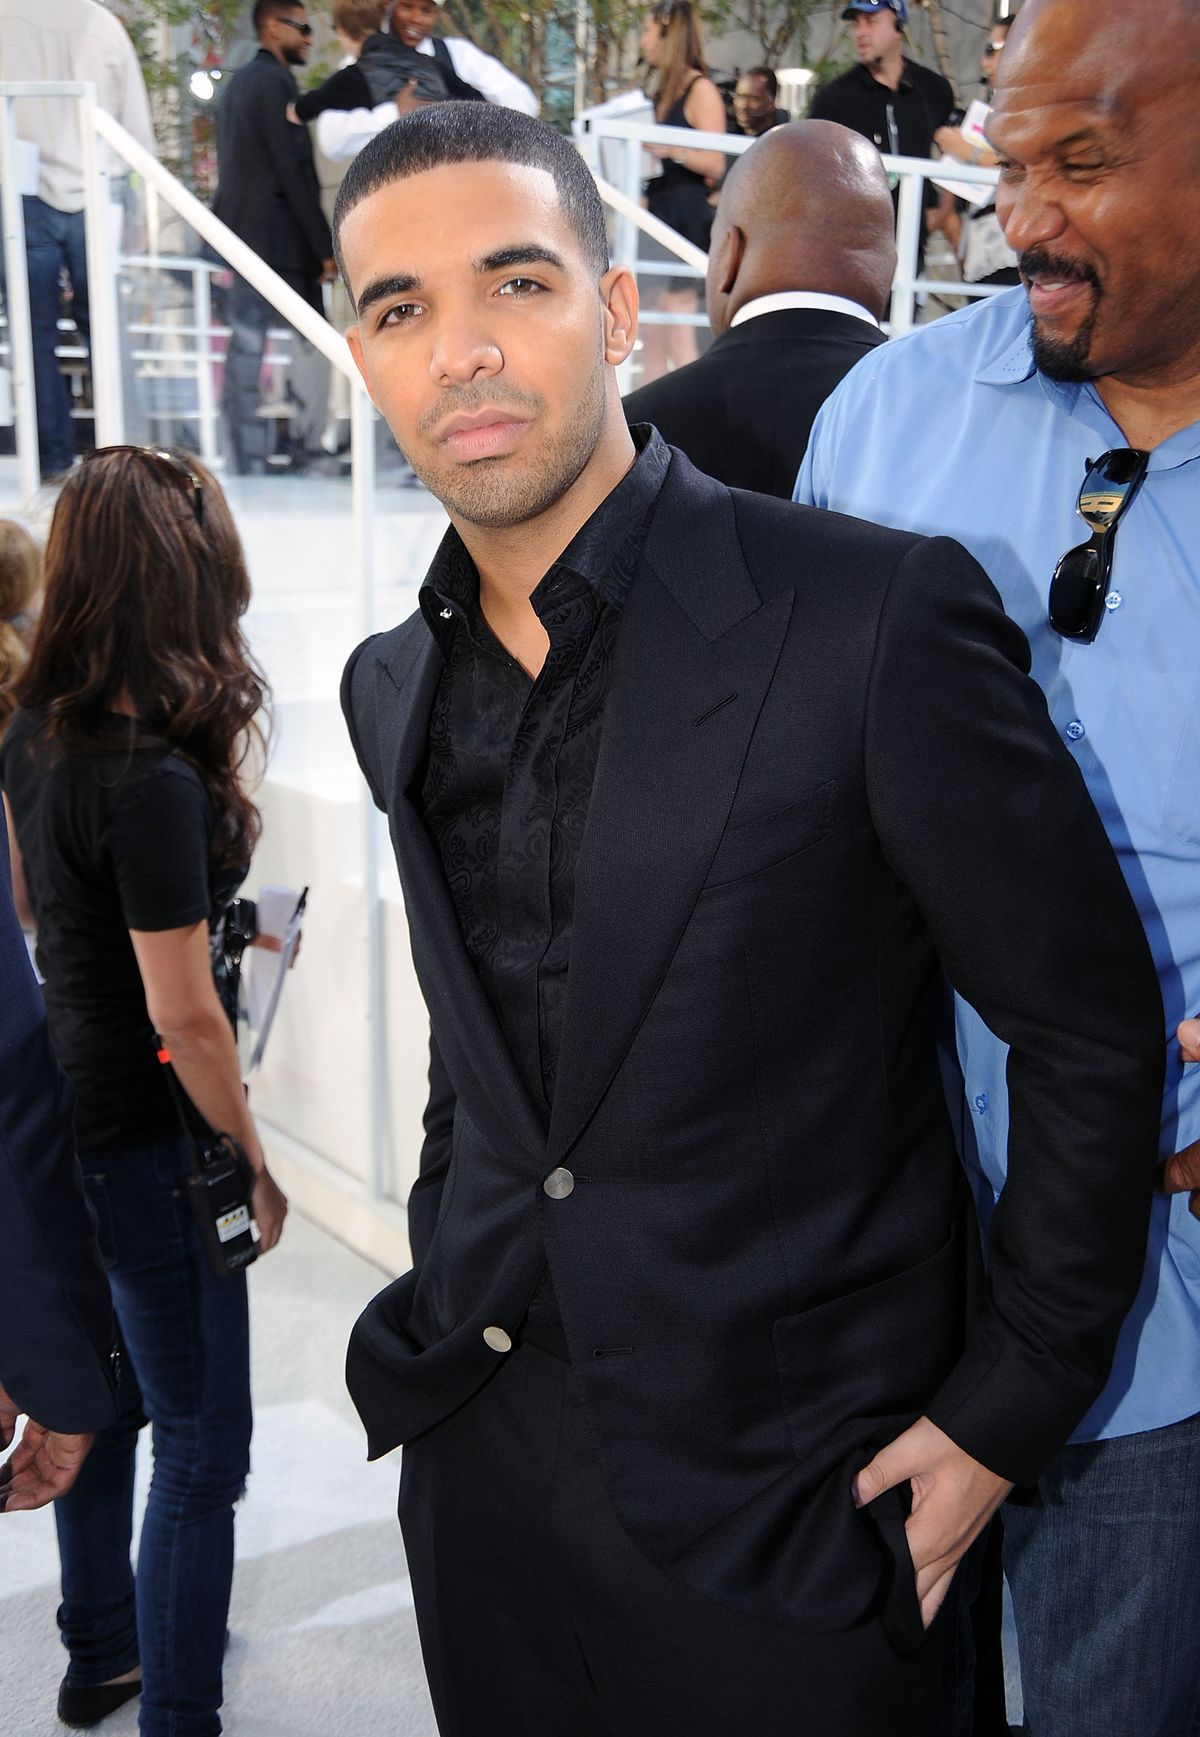 Rapper Drake arrives at the 2010 MTV Video Music Awards held at Nokia Theatre L.A. Live on September 12, 2010 in Los Angeles, California.